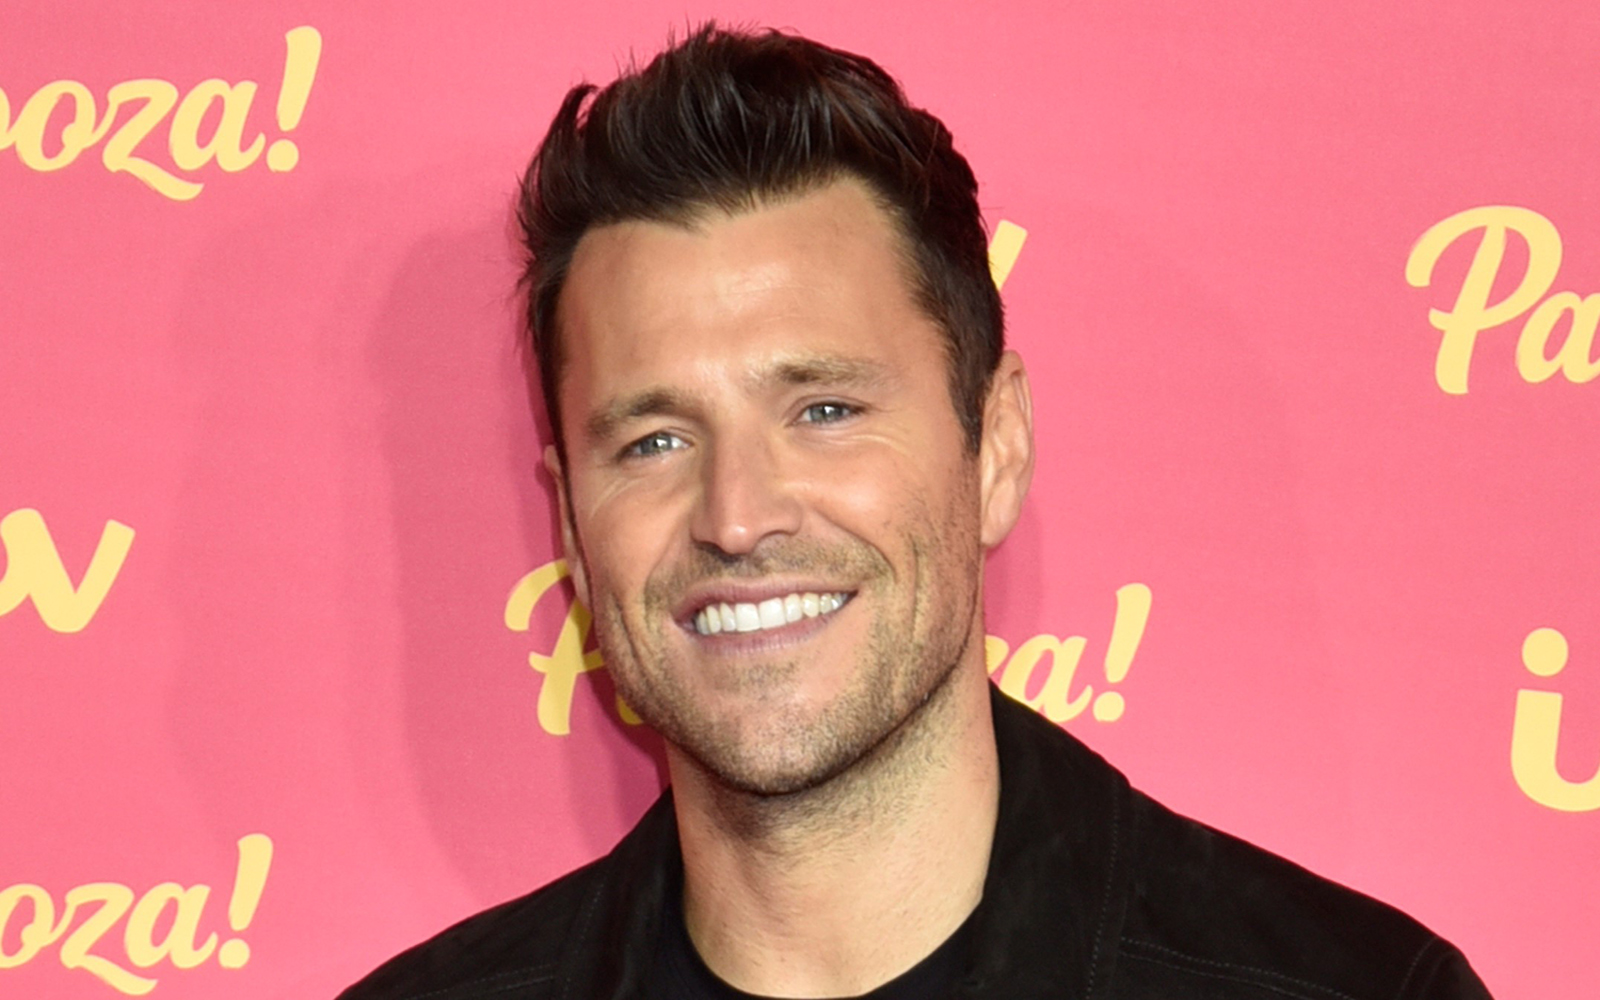 Mark Wright's fans declare he 'looks even better' as he unveils shaved head